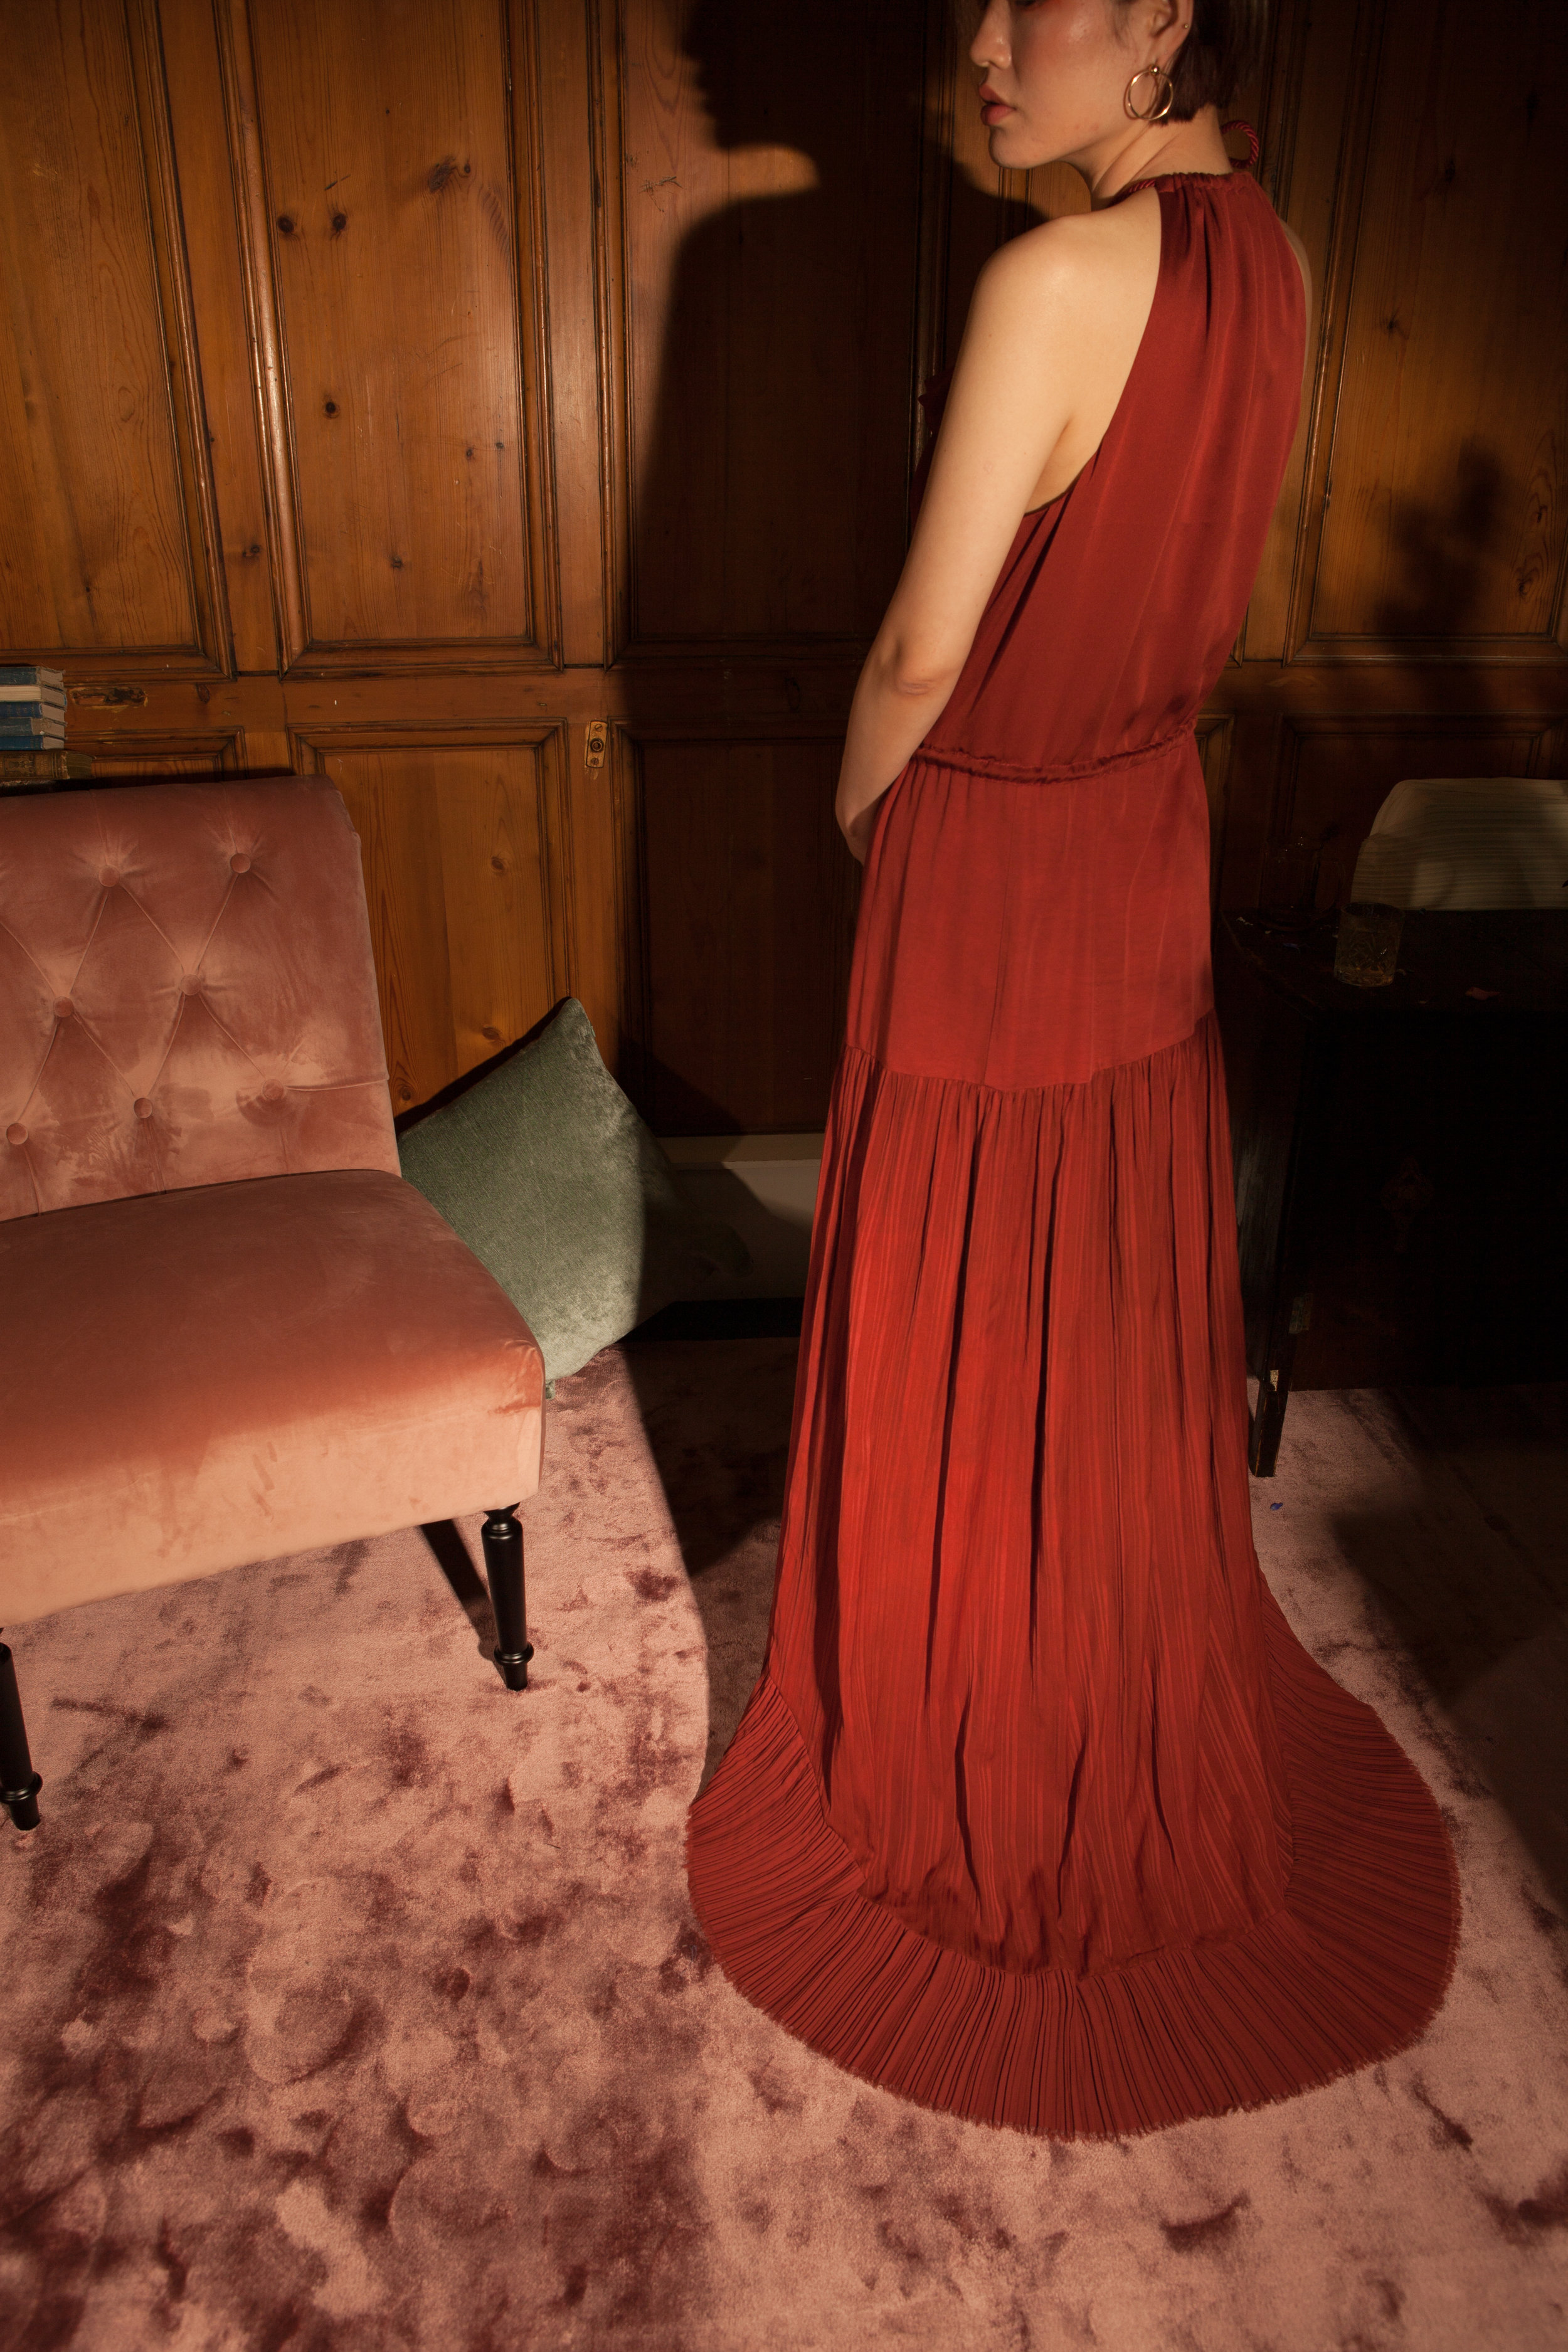 Floor length red gown by Baue